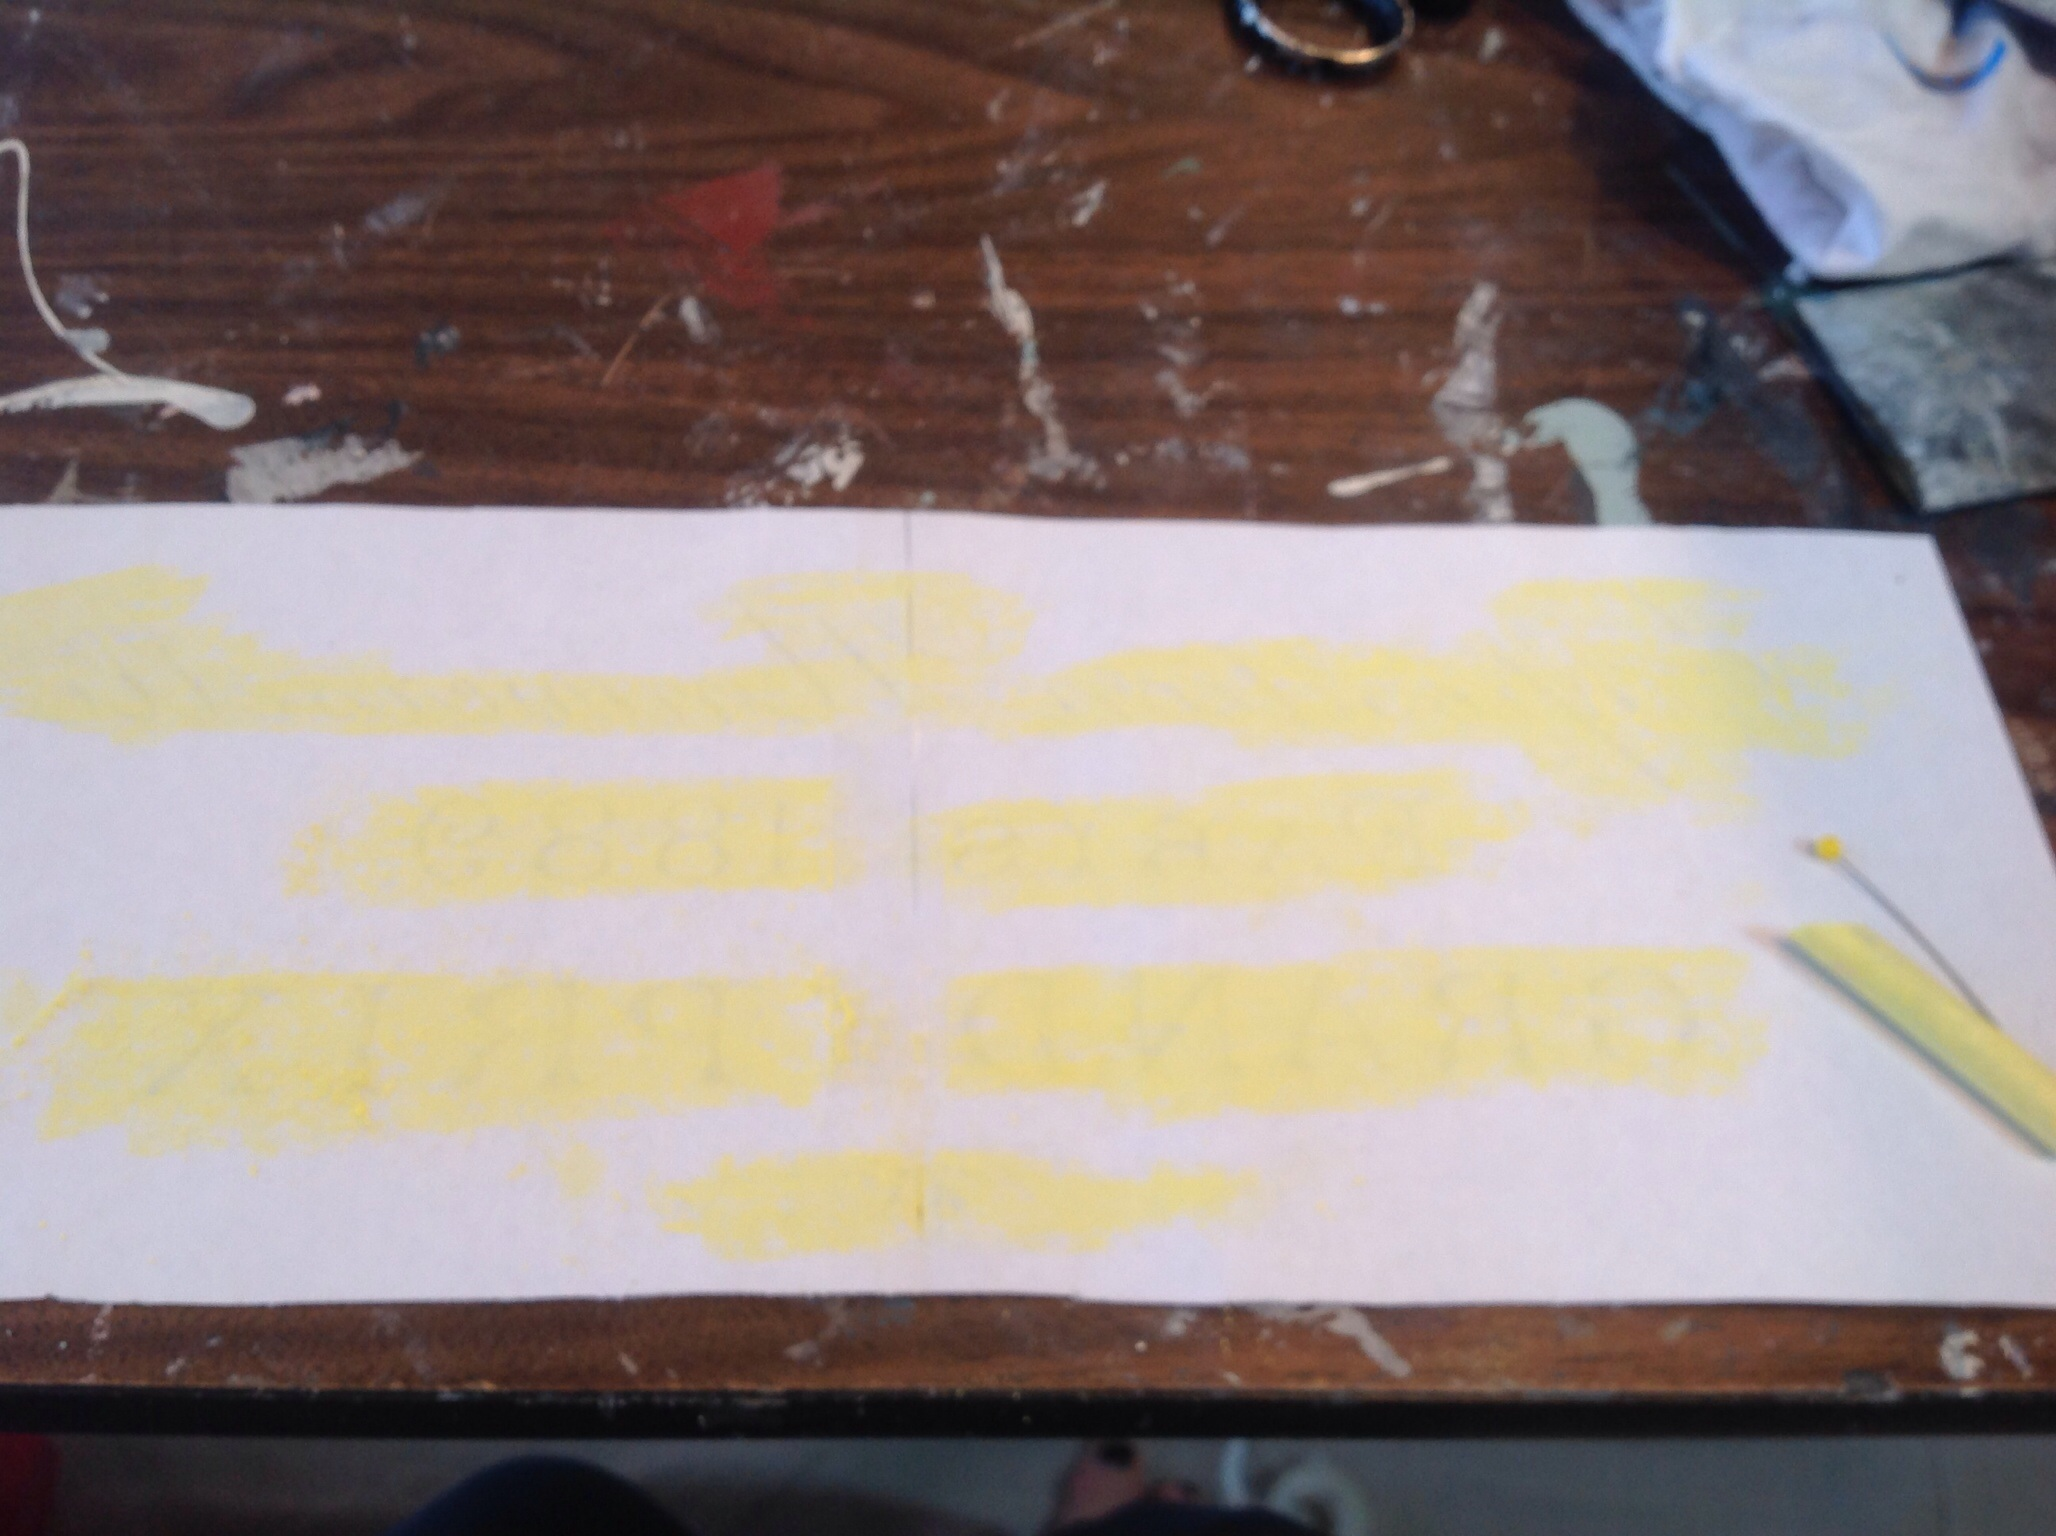 Rub chalk all over underside of graphic to allow tracing of the image onto table top